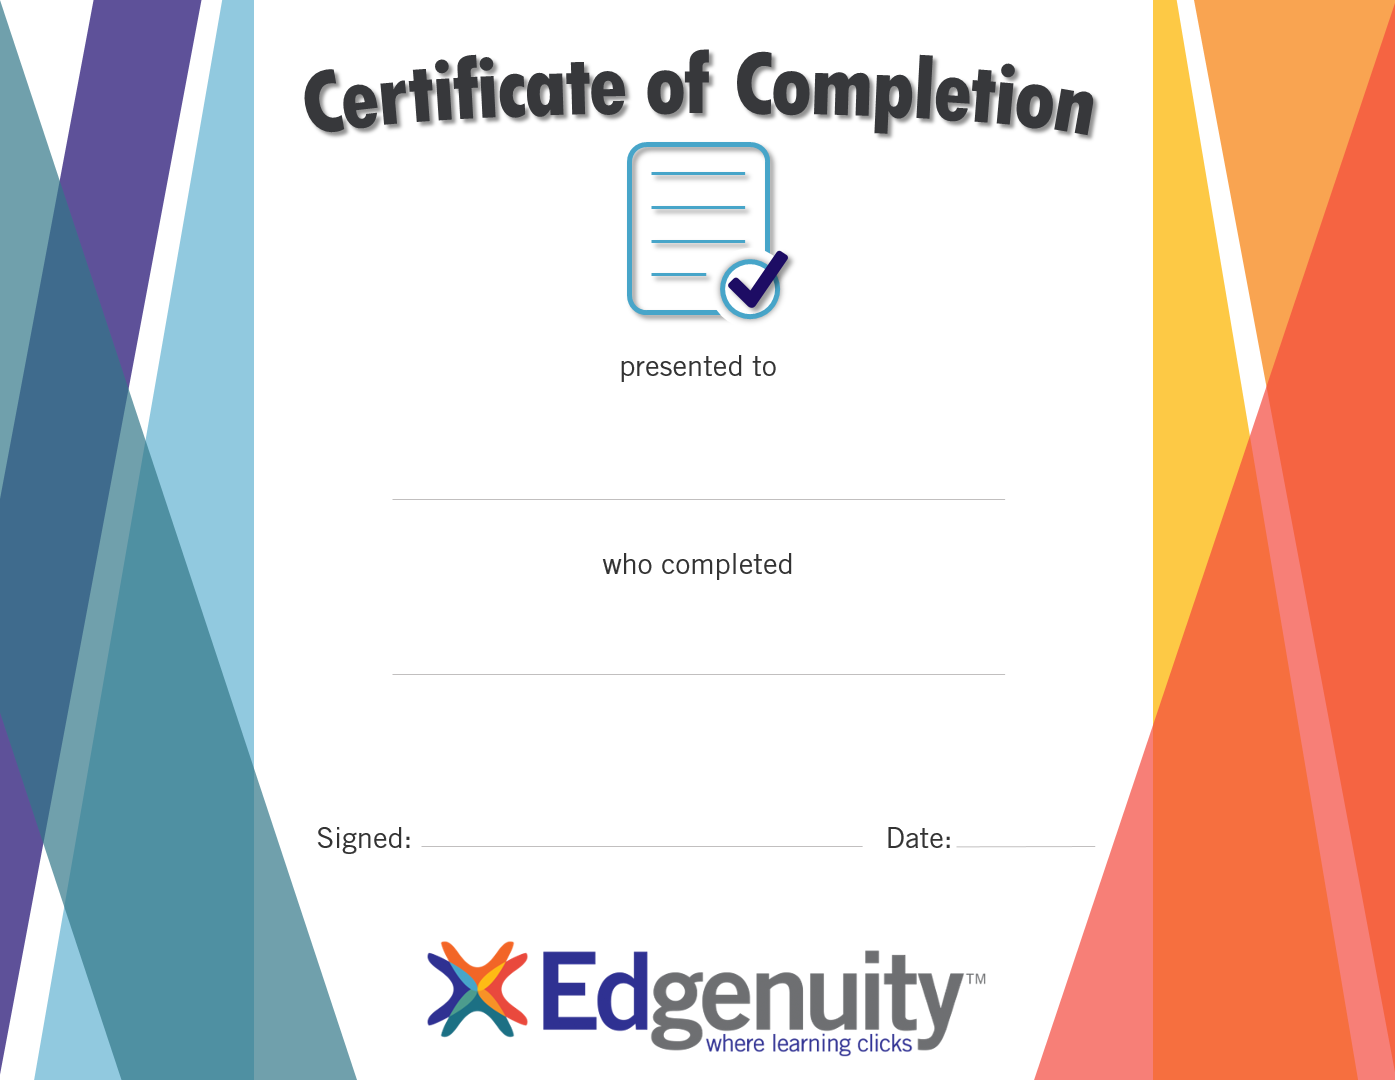 Certificate_of_Completion_v2-1_without_grade.png